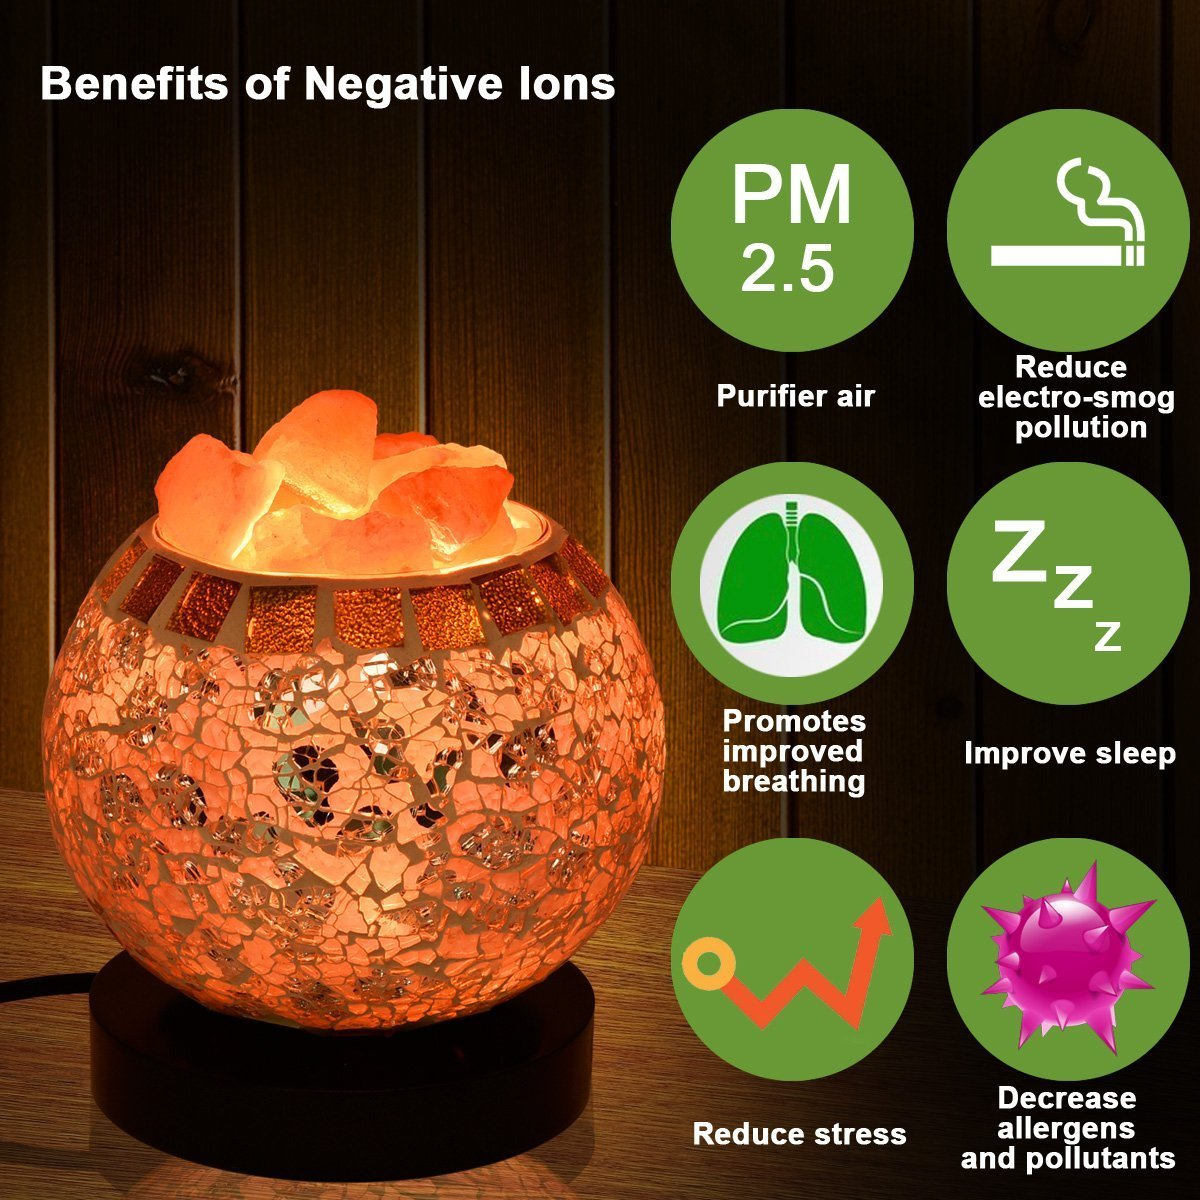 Himalayan Salt Lamp, Natural Crystal Salt Lamp Salt Chunks in Glass Bowl with Wood Base, Bulb and Dimmer Control for Christmas Gift and Home Decorations. [energy class a+++] by COOWOO (Image #4)